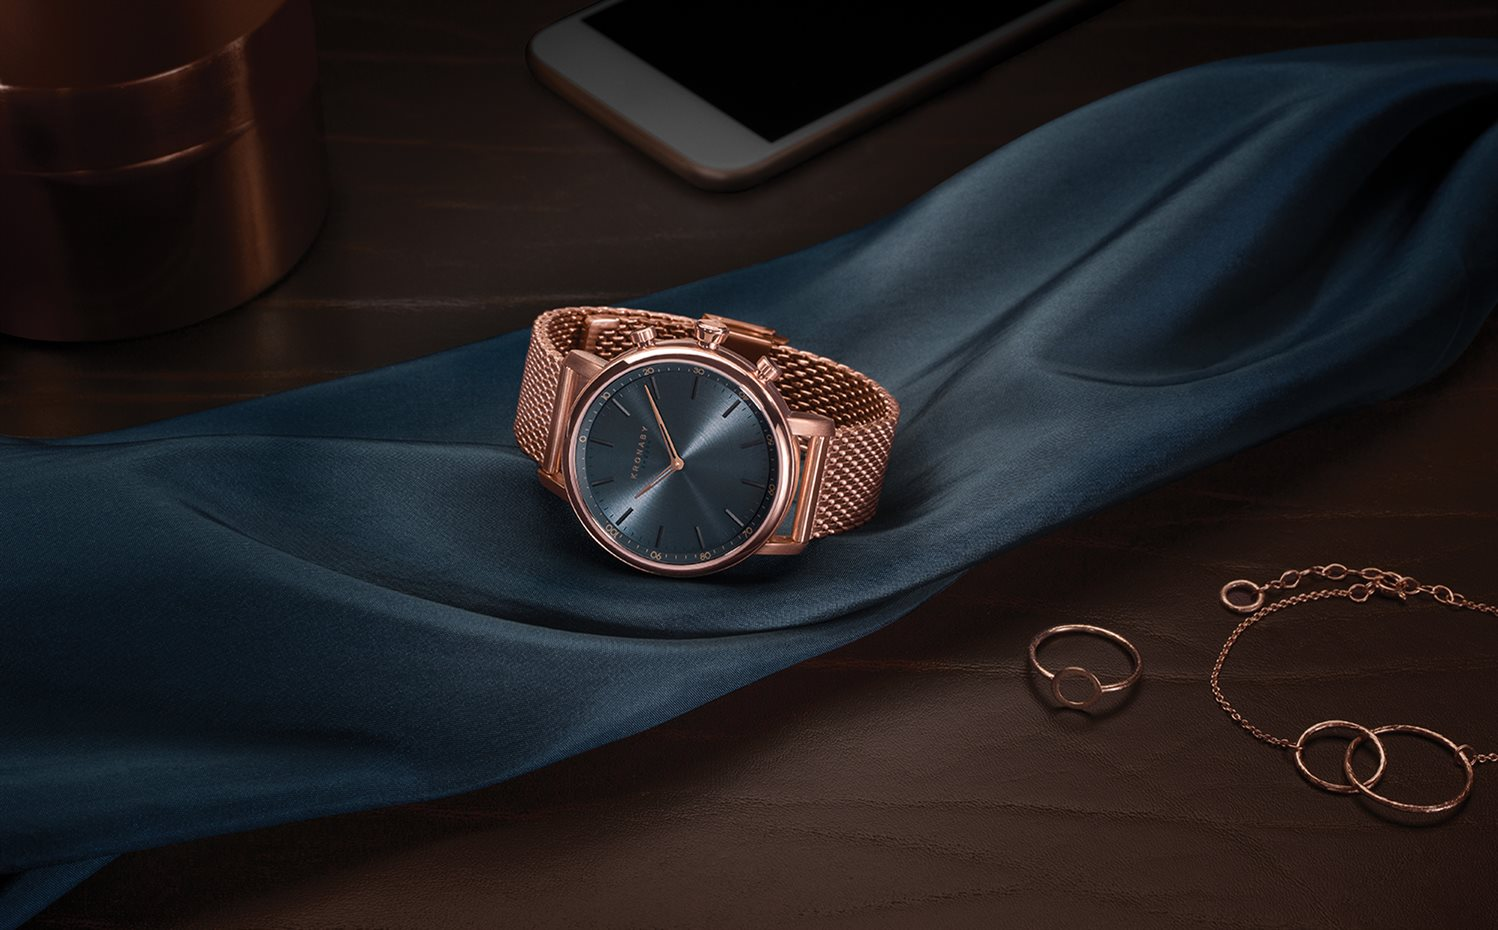 UPDATED Still life Garbo Carat Rose gold mesh-sRGB. Modelo Carat, con correa de malla en color rosado